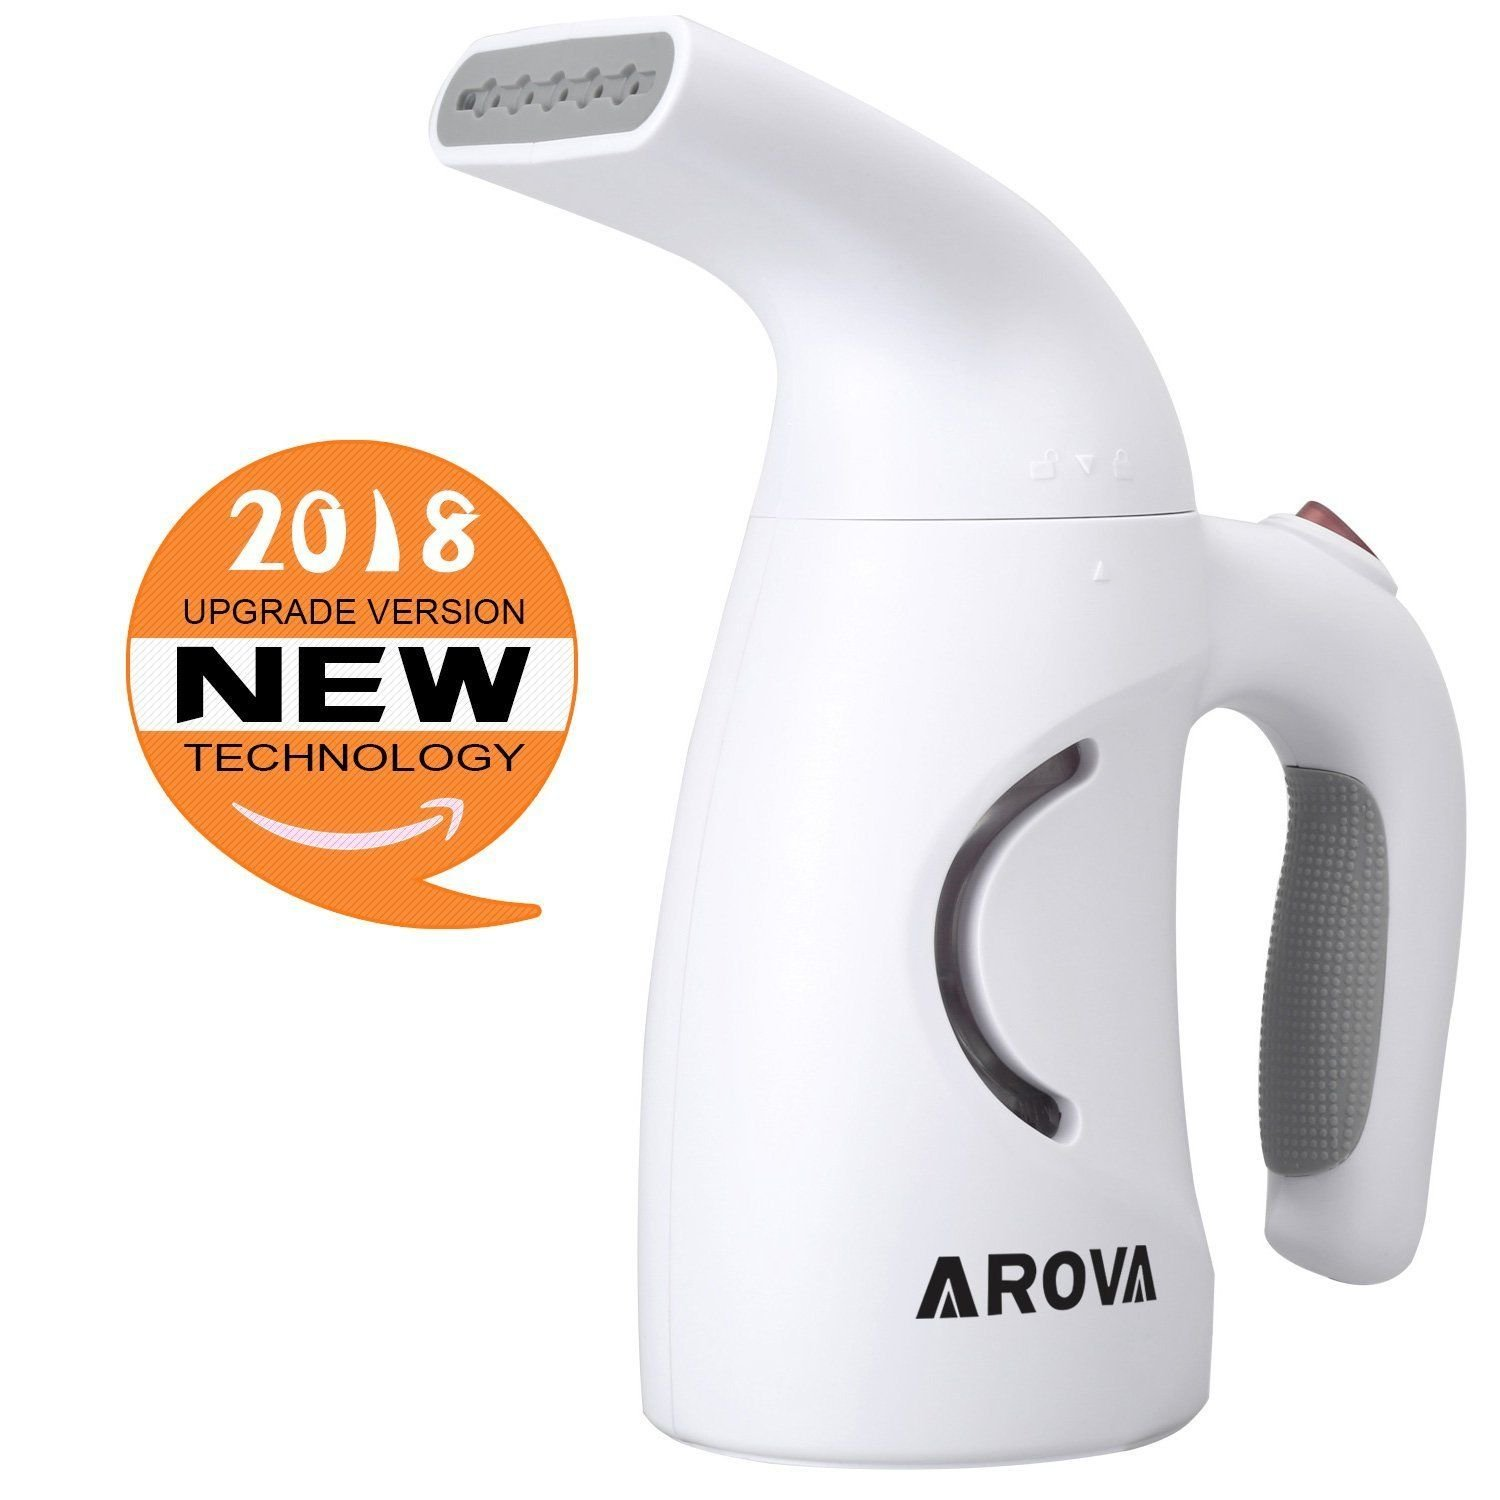 Arova Clothes Handheld Steamer 140ML Portable Garment Steamer, 2 Min Heat-up Premium Fabric Steam Cleaner, Safe, Lightweight and Perfect Clothing Steamer for Travel Home DL-YD01